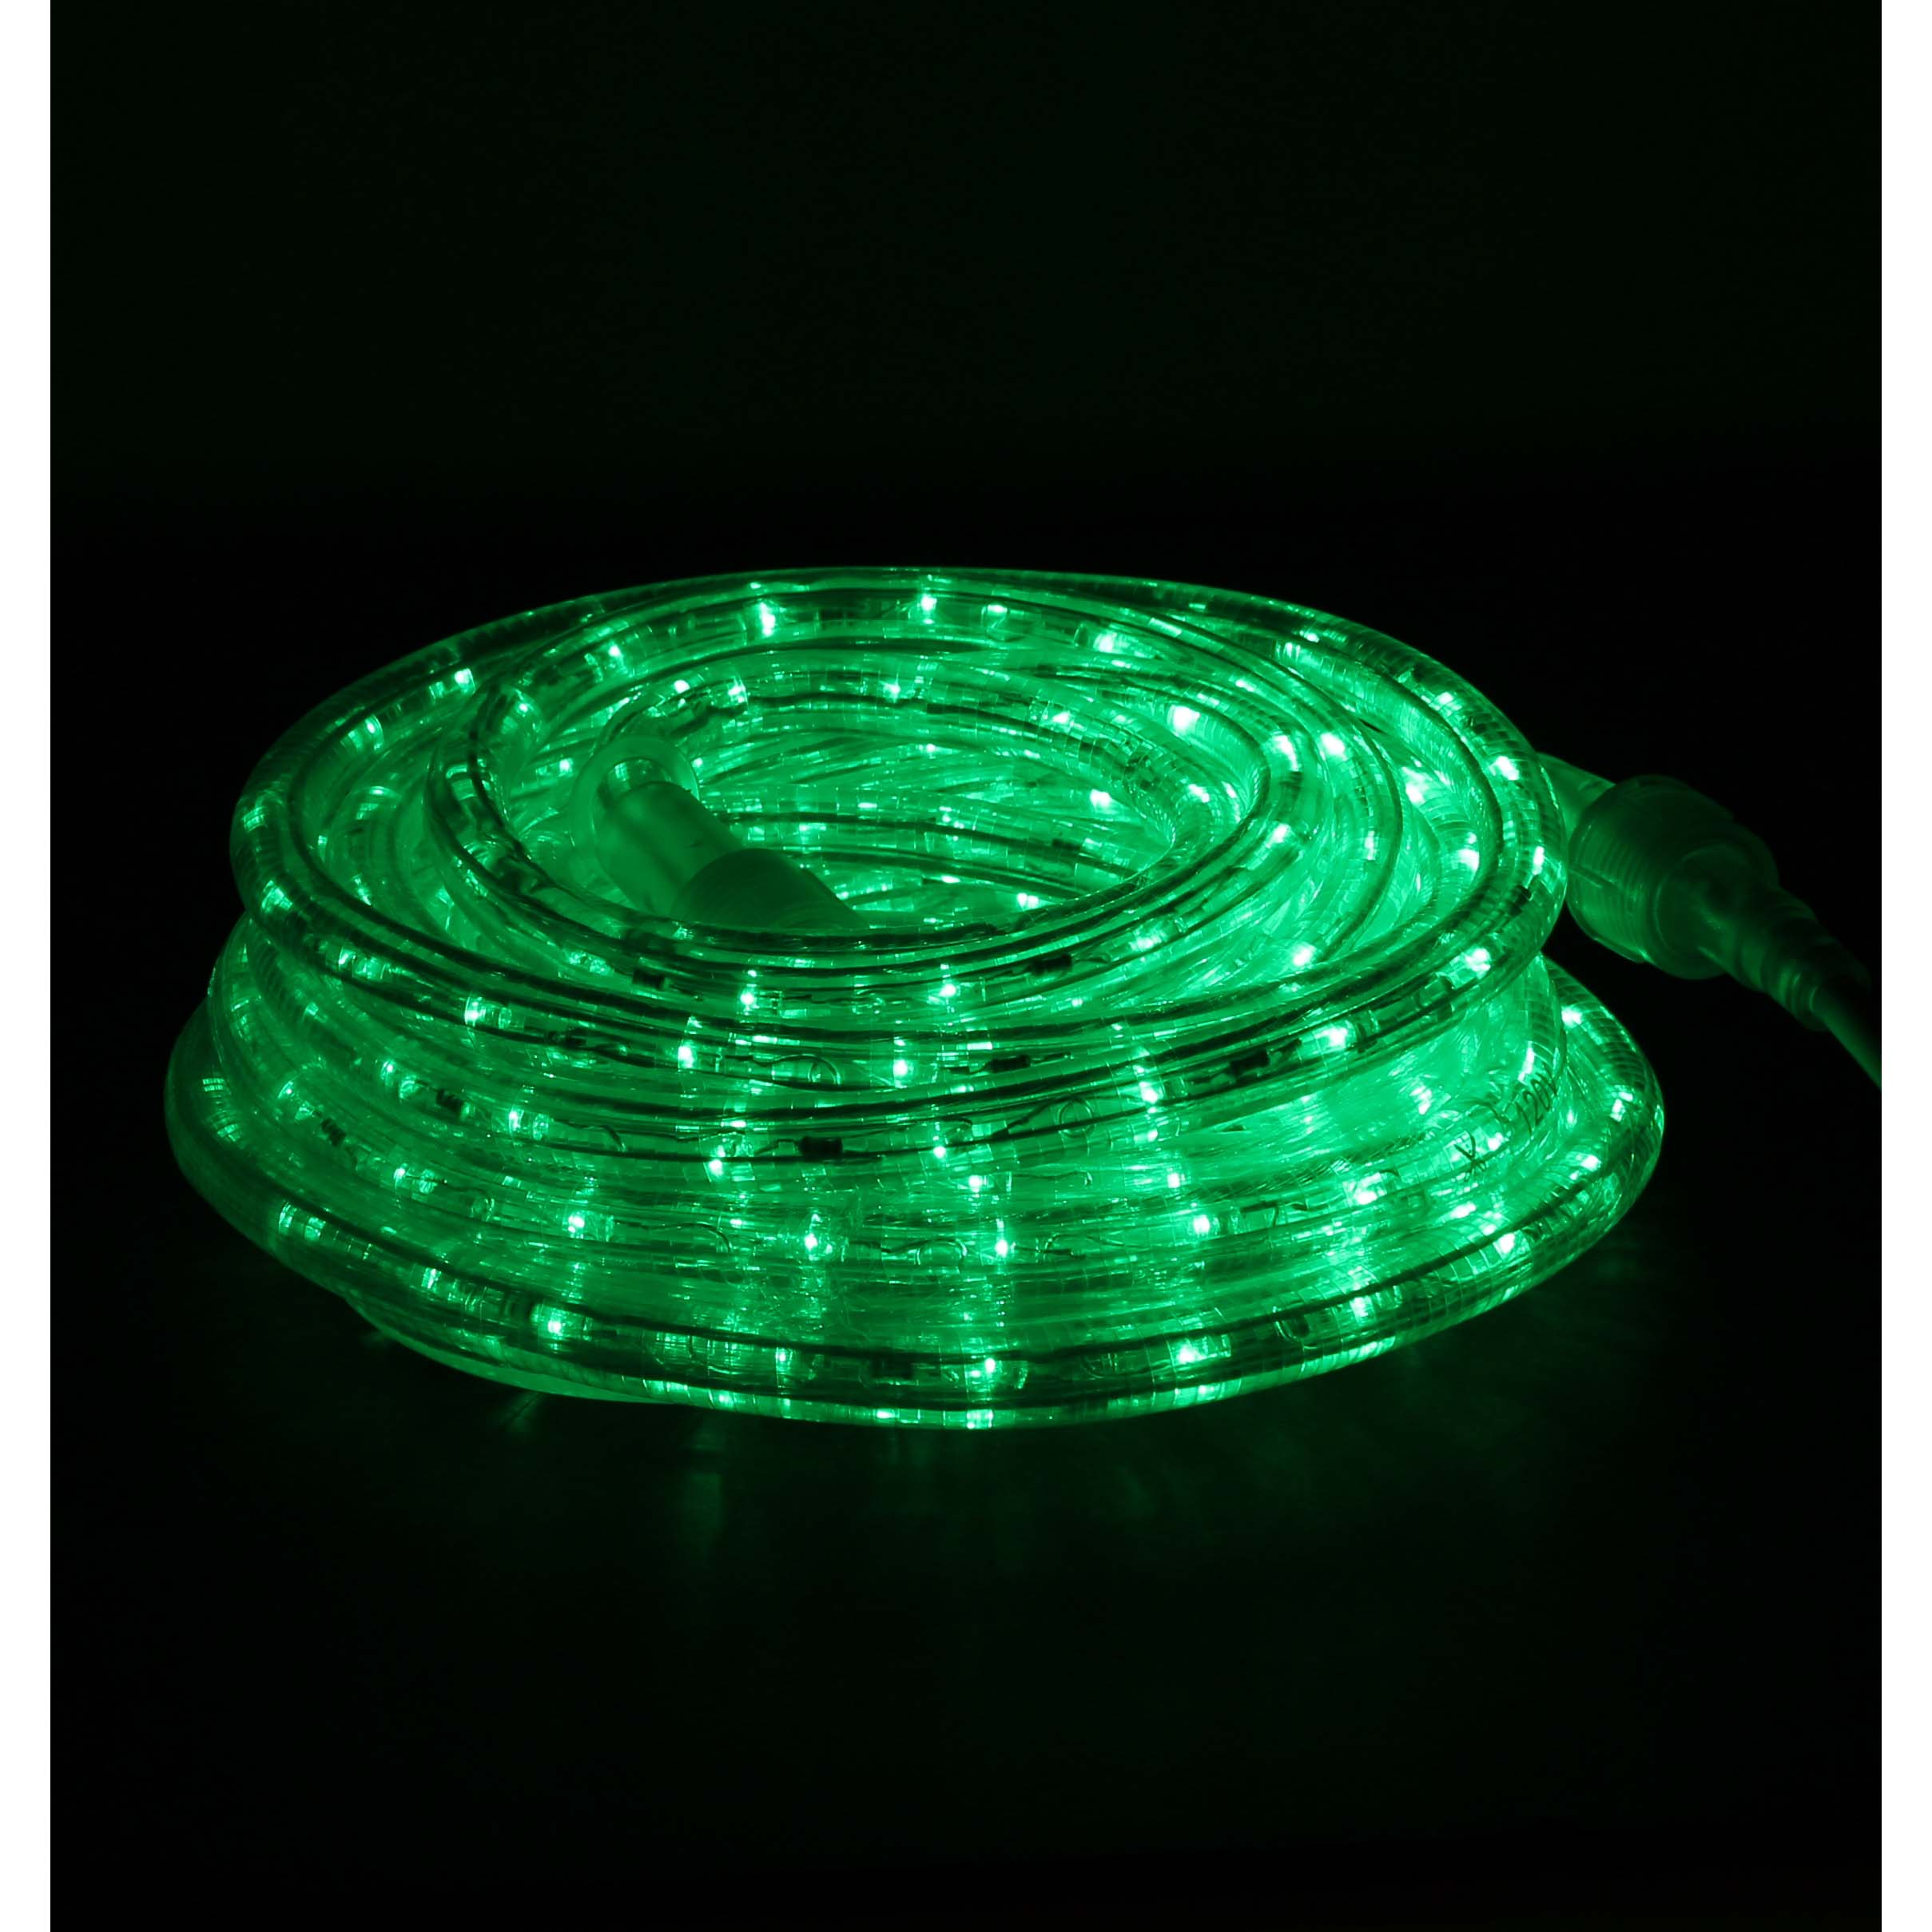 Green led rope lights 24ft rlwl 24 green direct lighting green rope lights led 24 mozeypictures Image collections